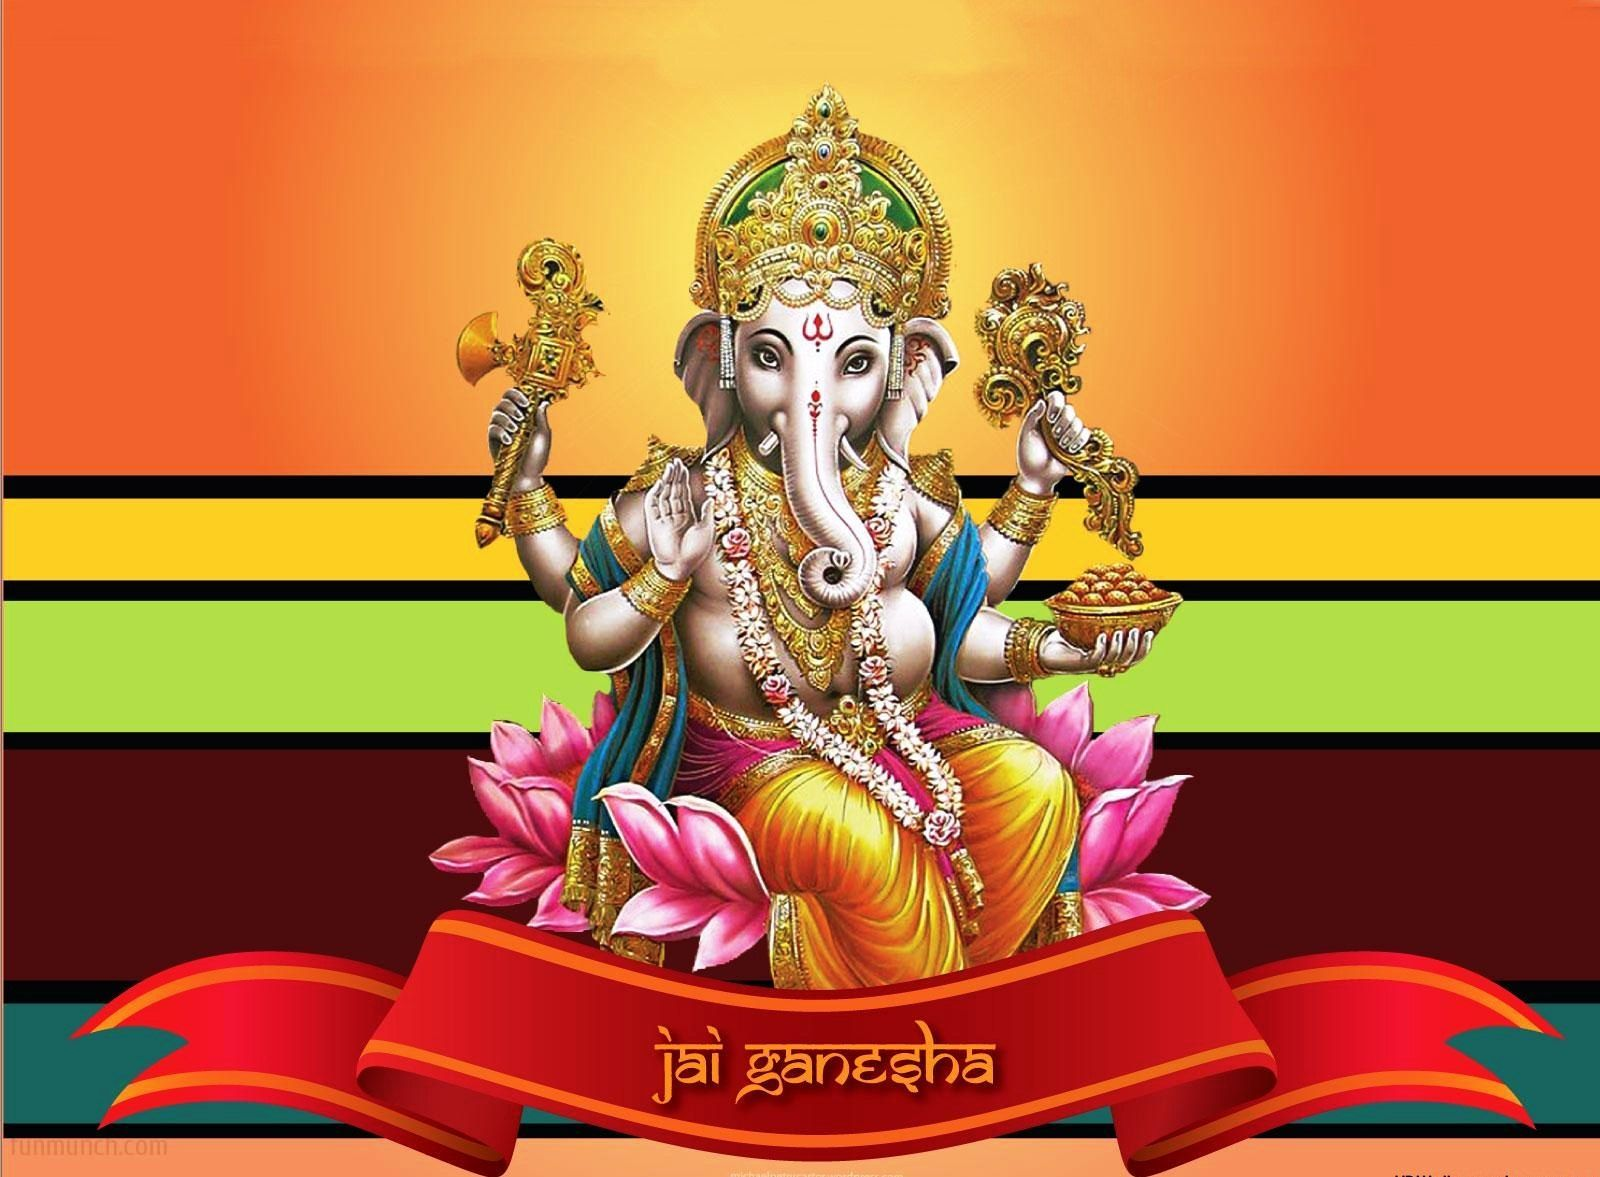 Ganesha chaturthi is the hindu festival celebrated in honour of the god ganesha the elephant